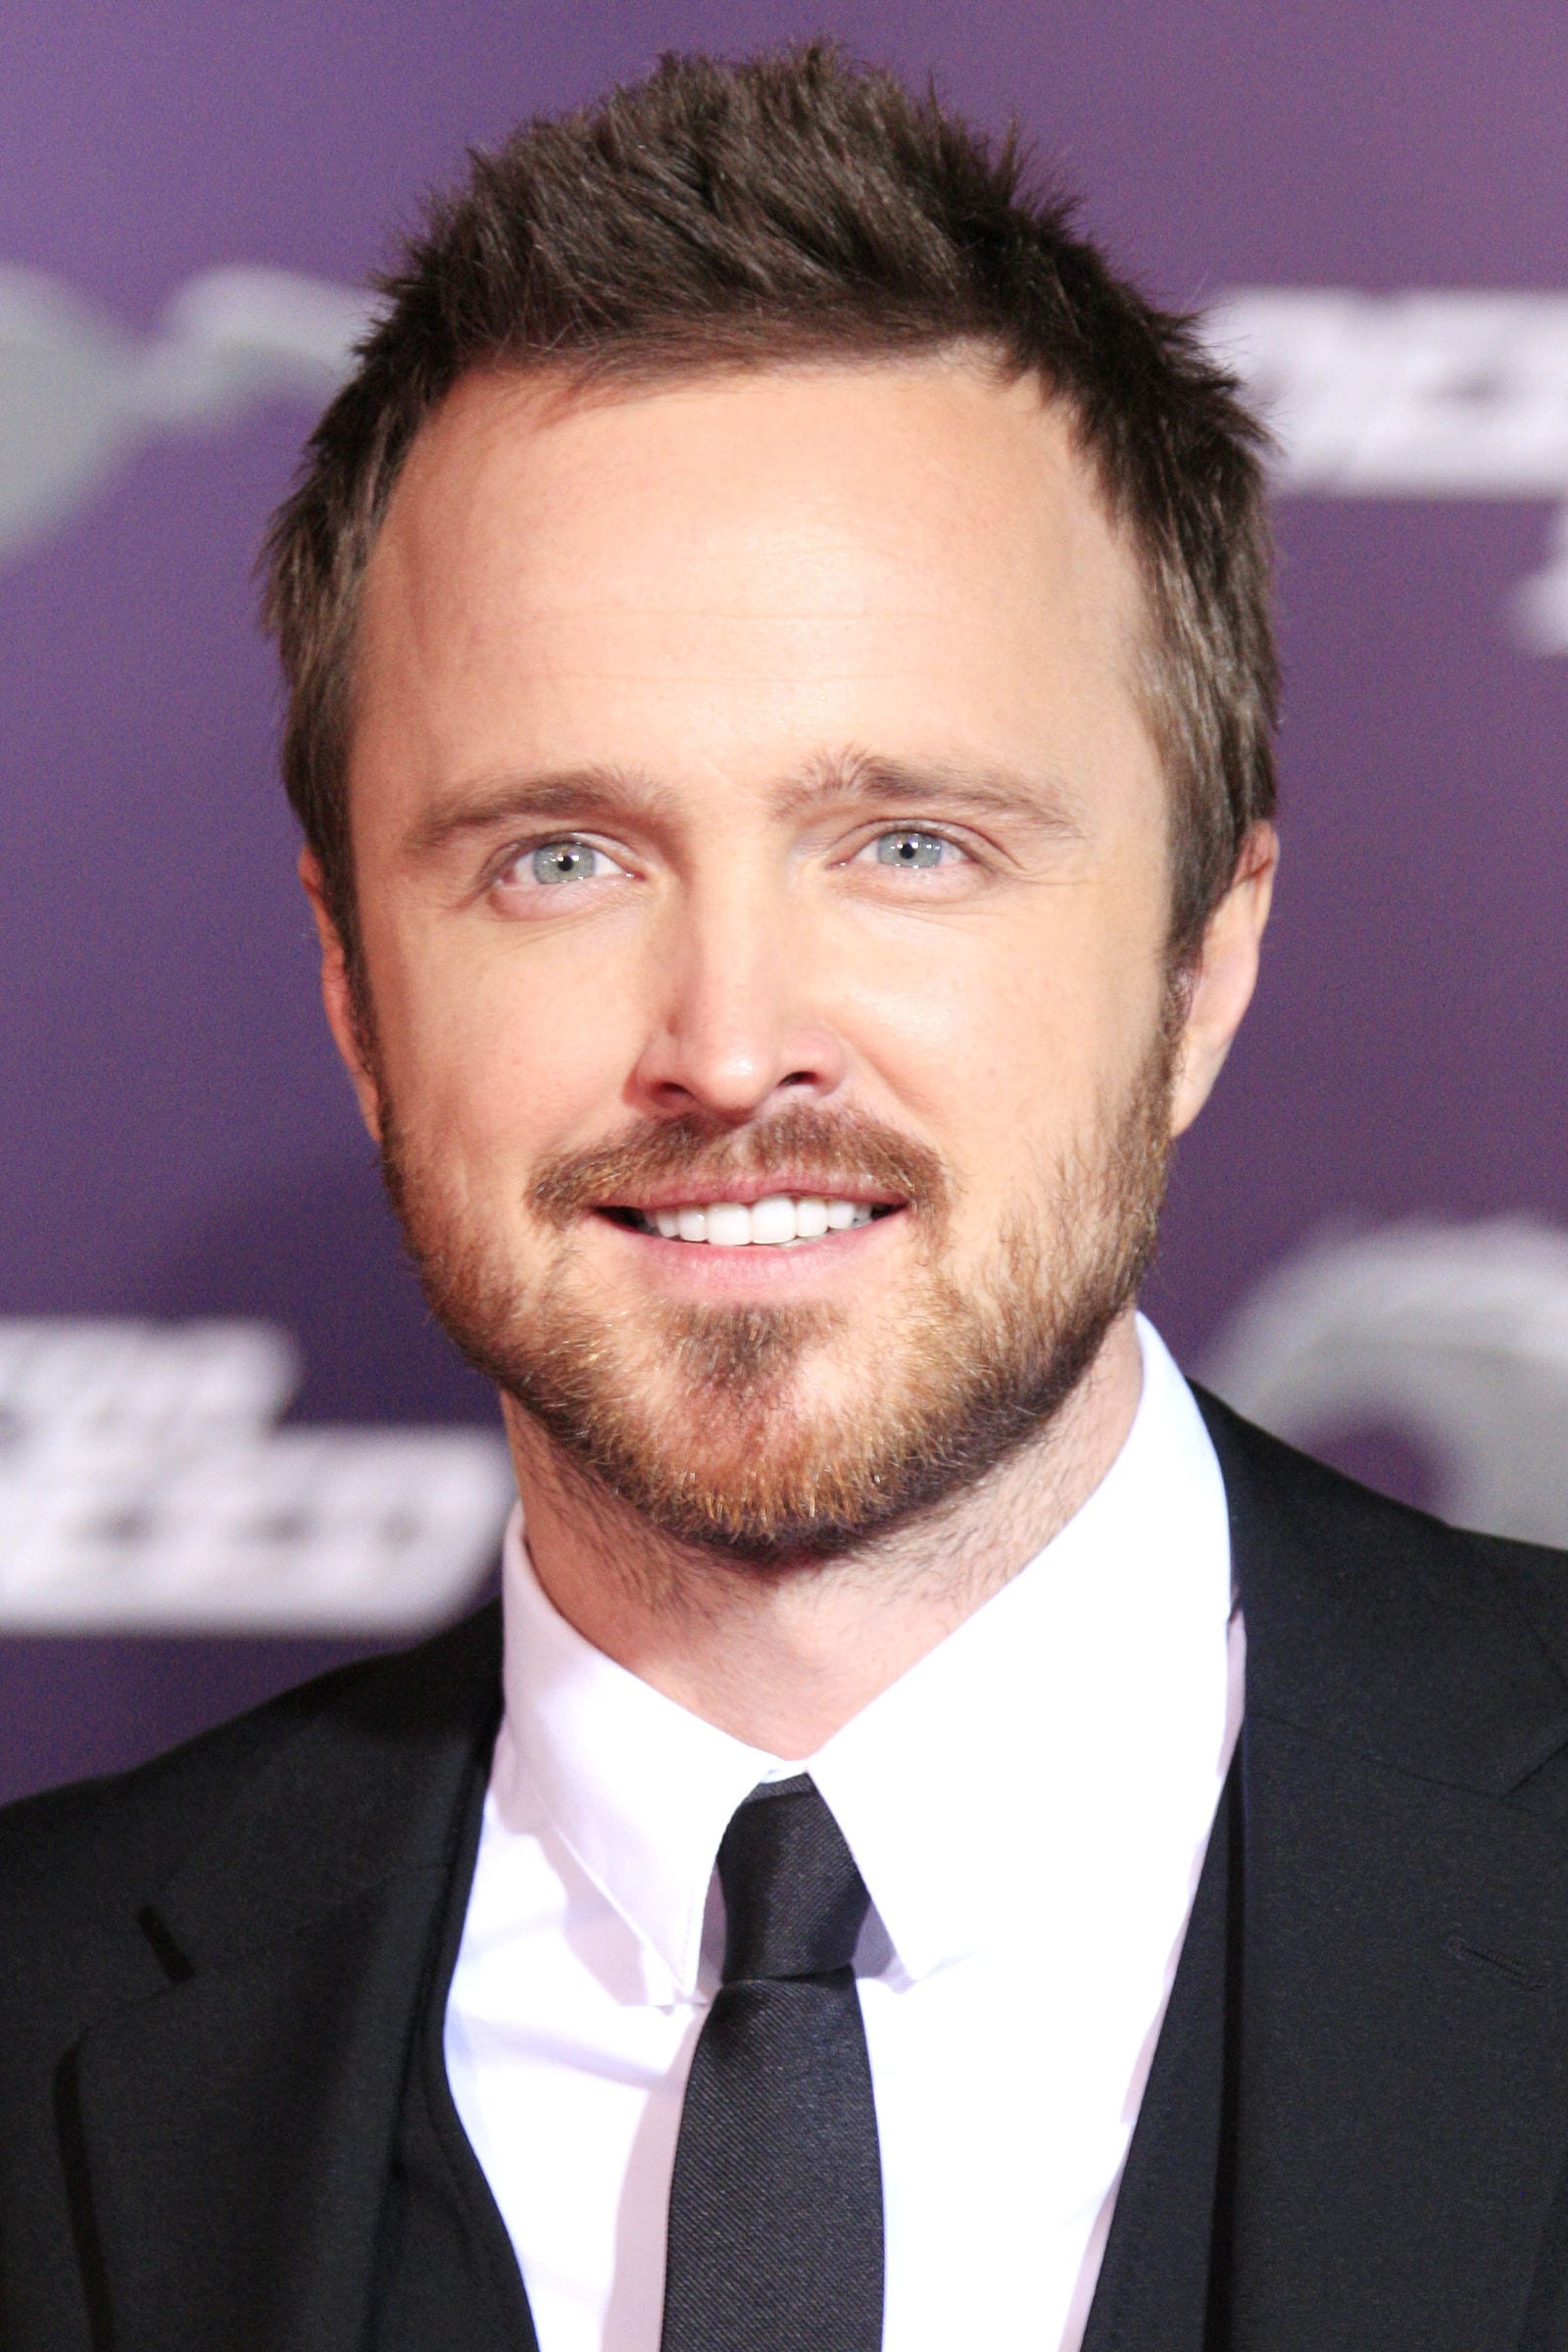 Aaron Paul short brushed up hairstyle by Joe Seer